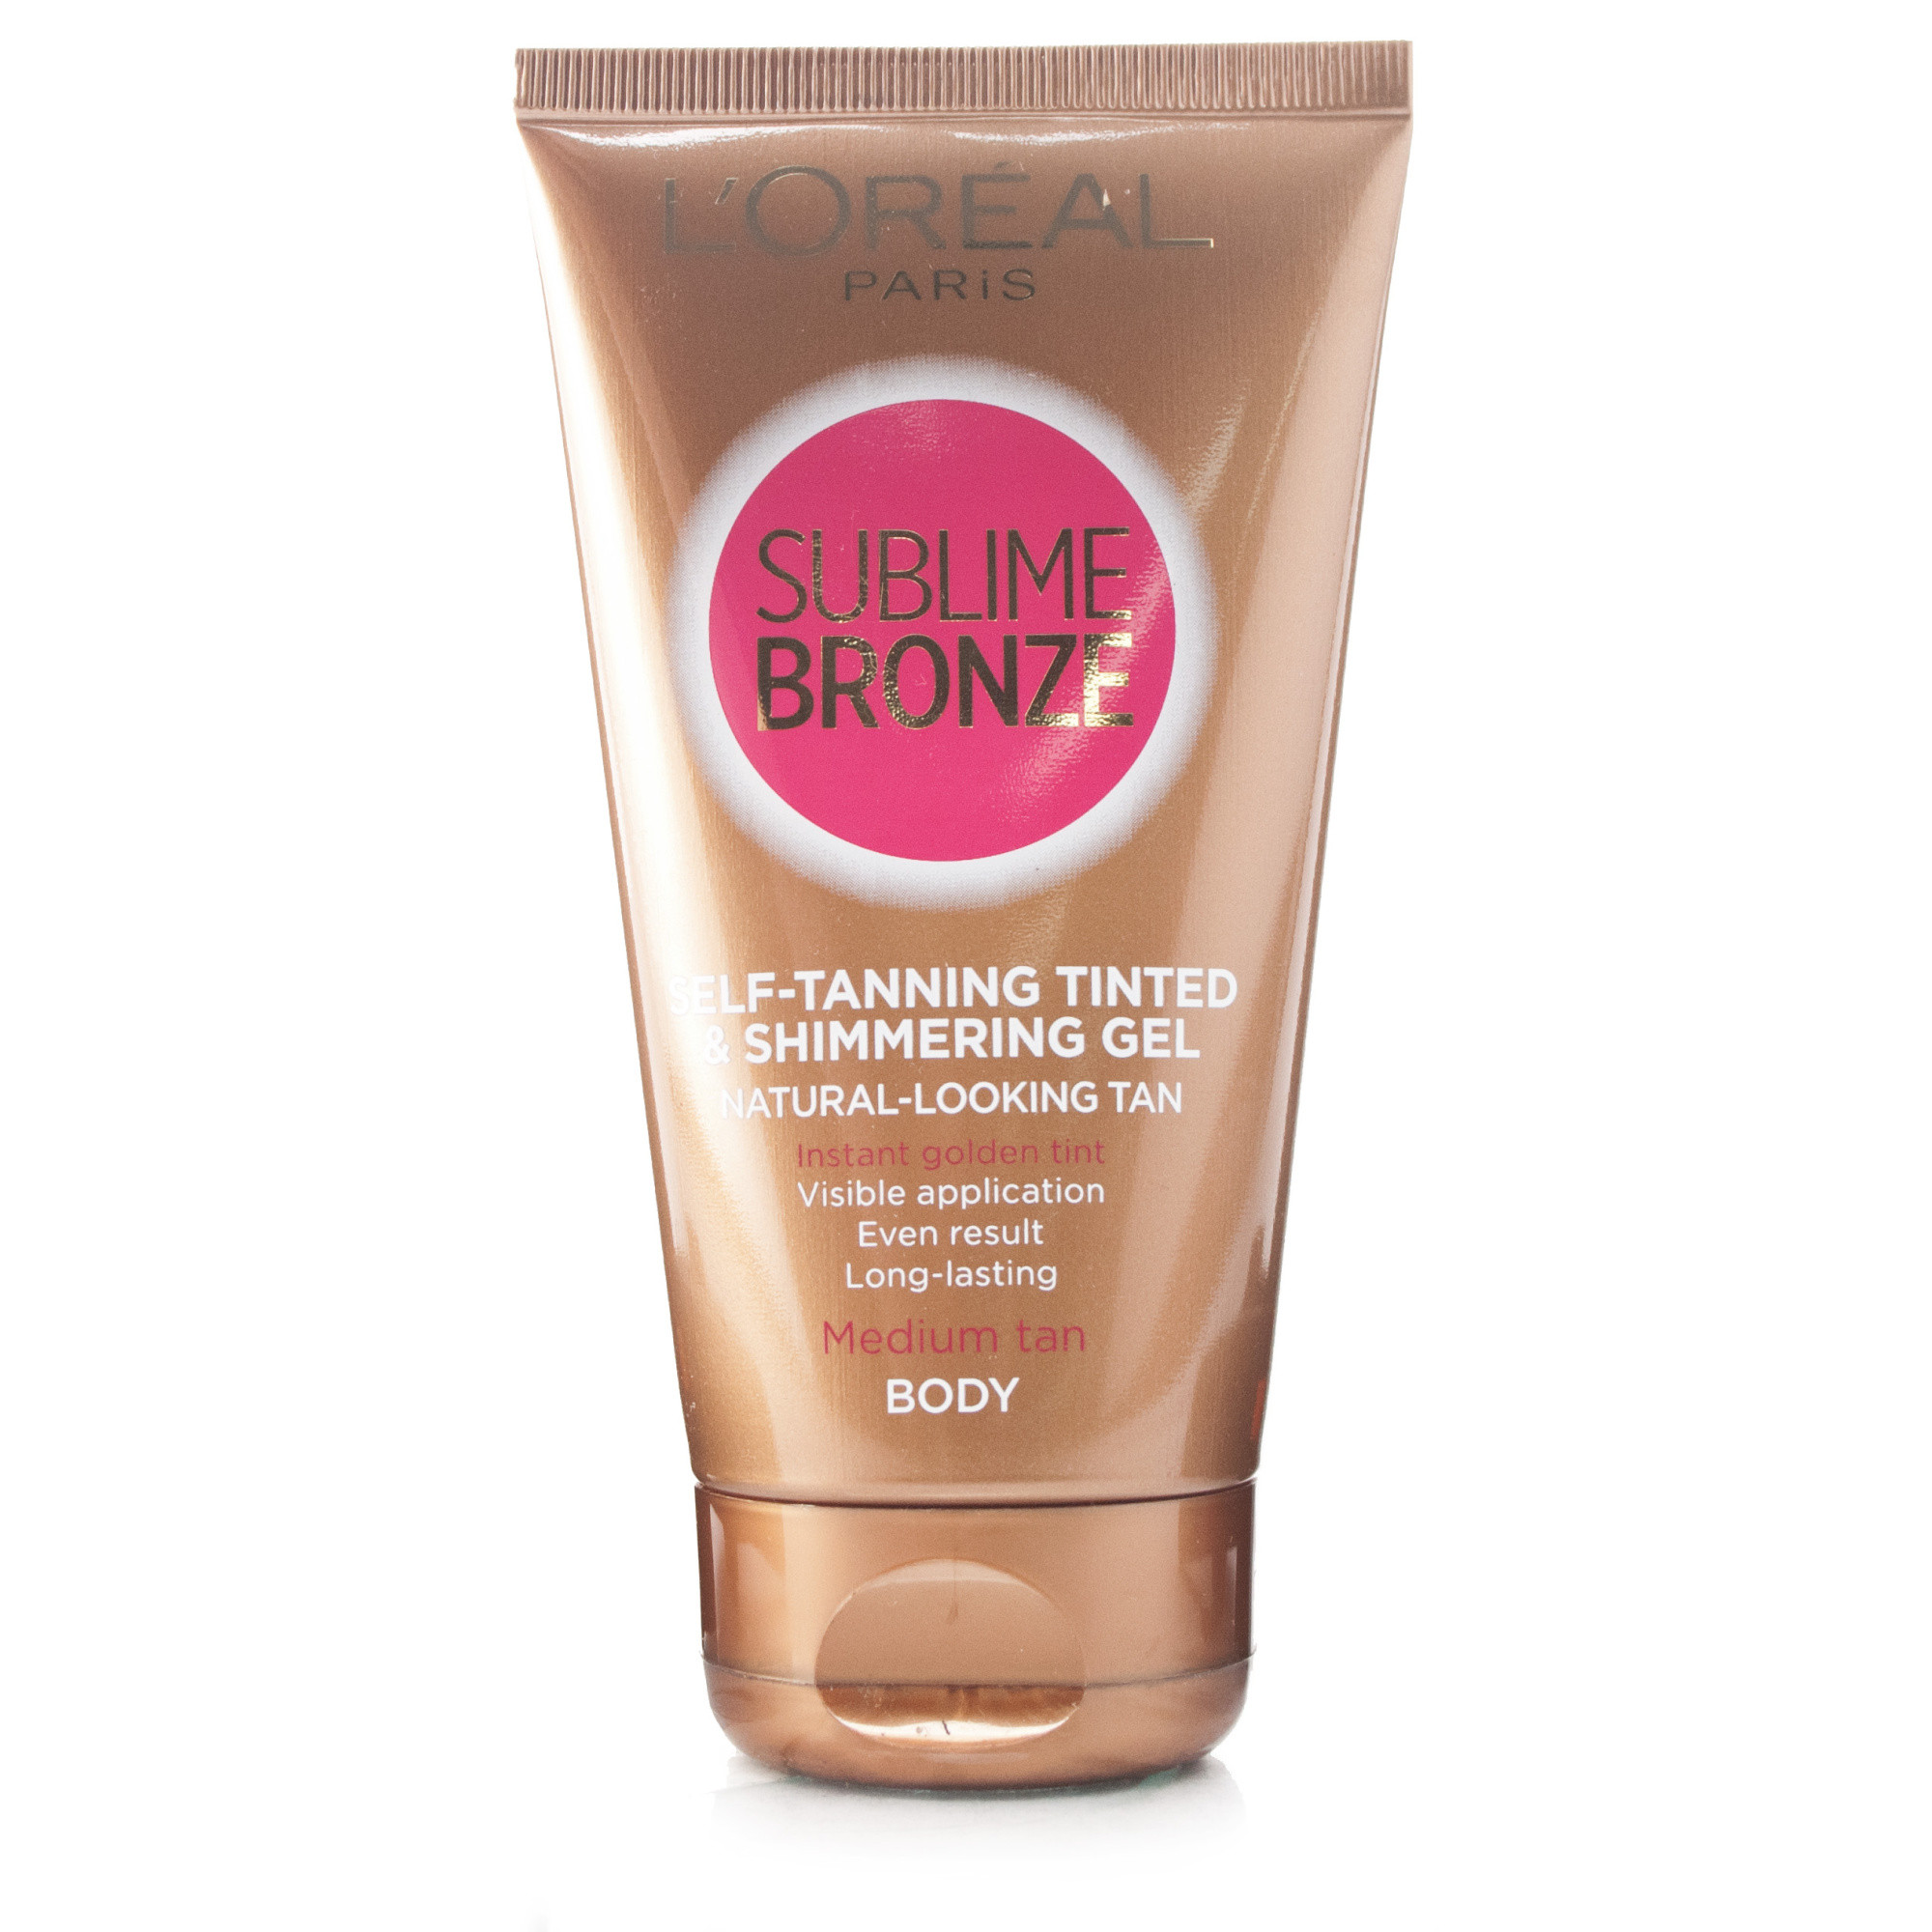 L'oreal Sublime Bronze Self-Tanning Gel Tinted & Shimmering Medium Skin